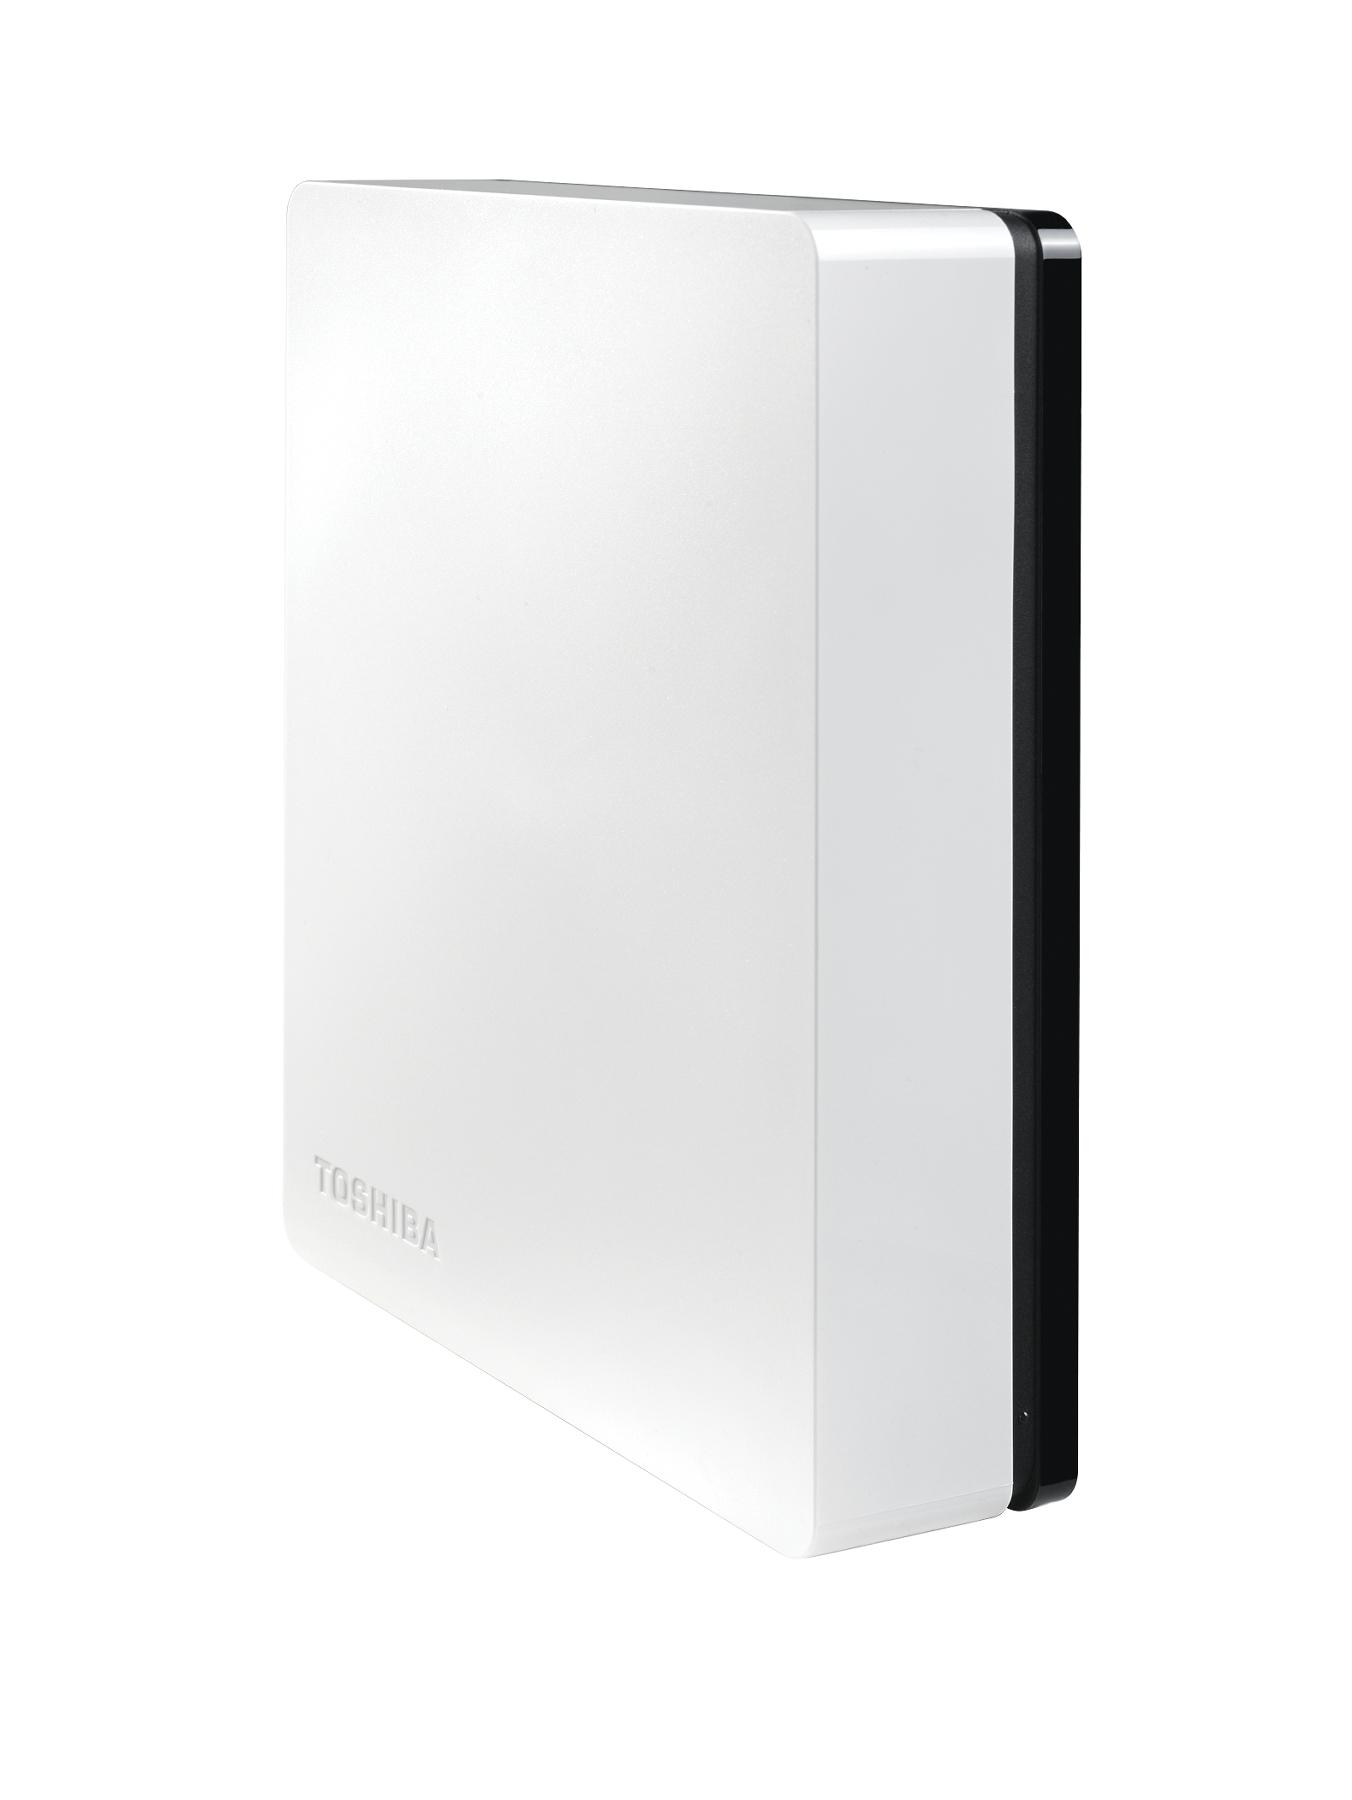 Toshiba STOR.E Canvio Desktop 3Tb External Desktop Hard Drive - Black/White